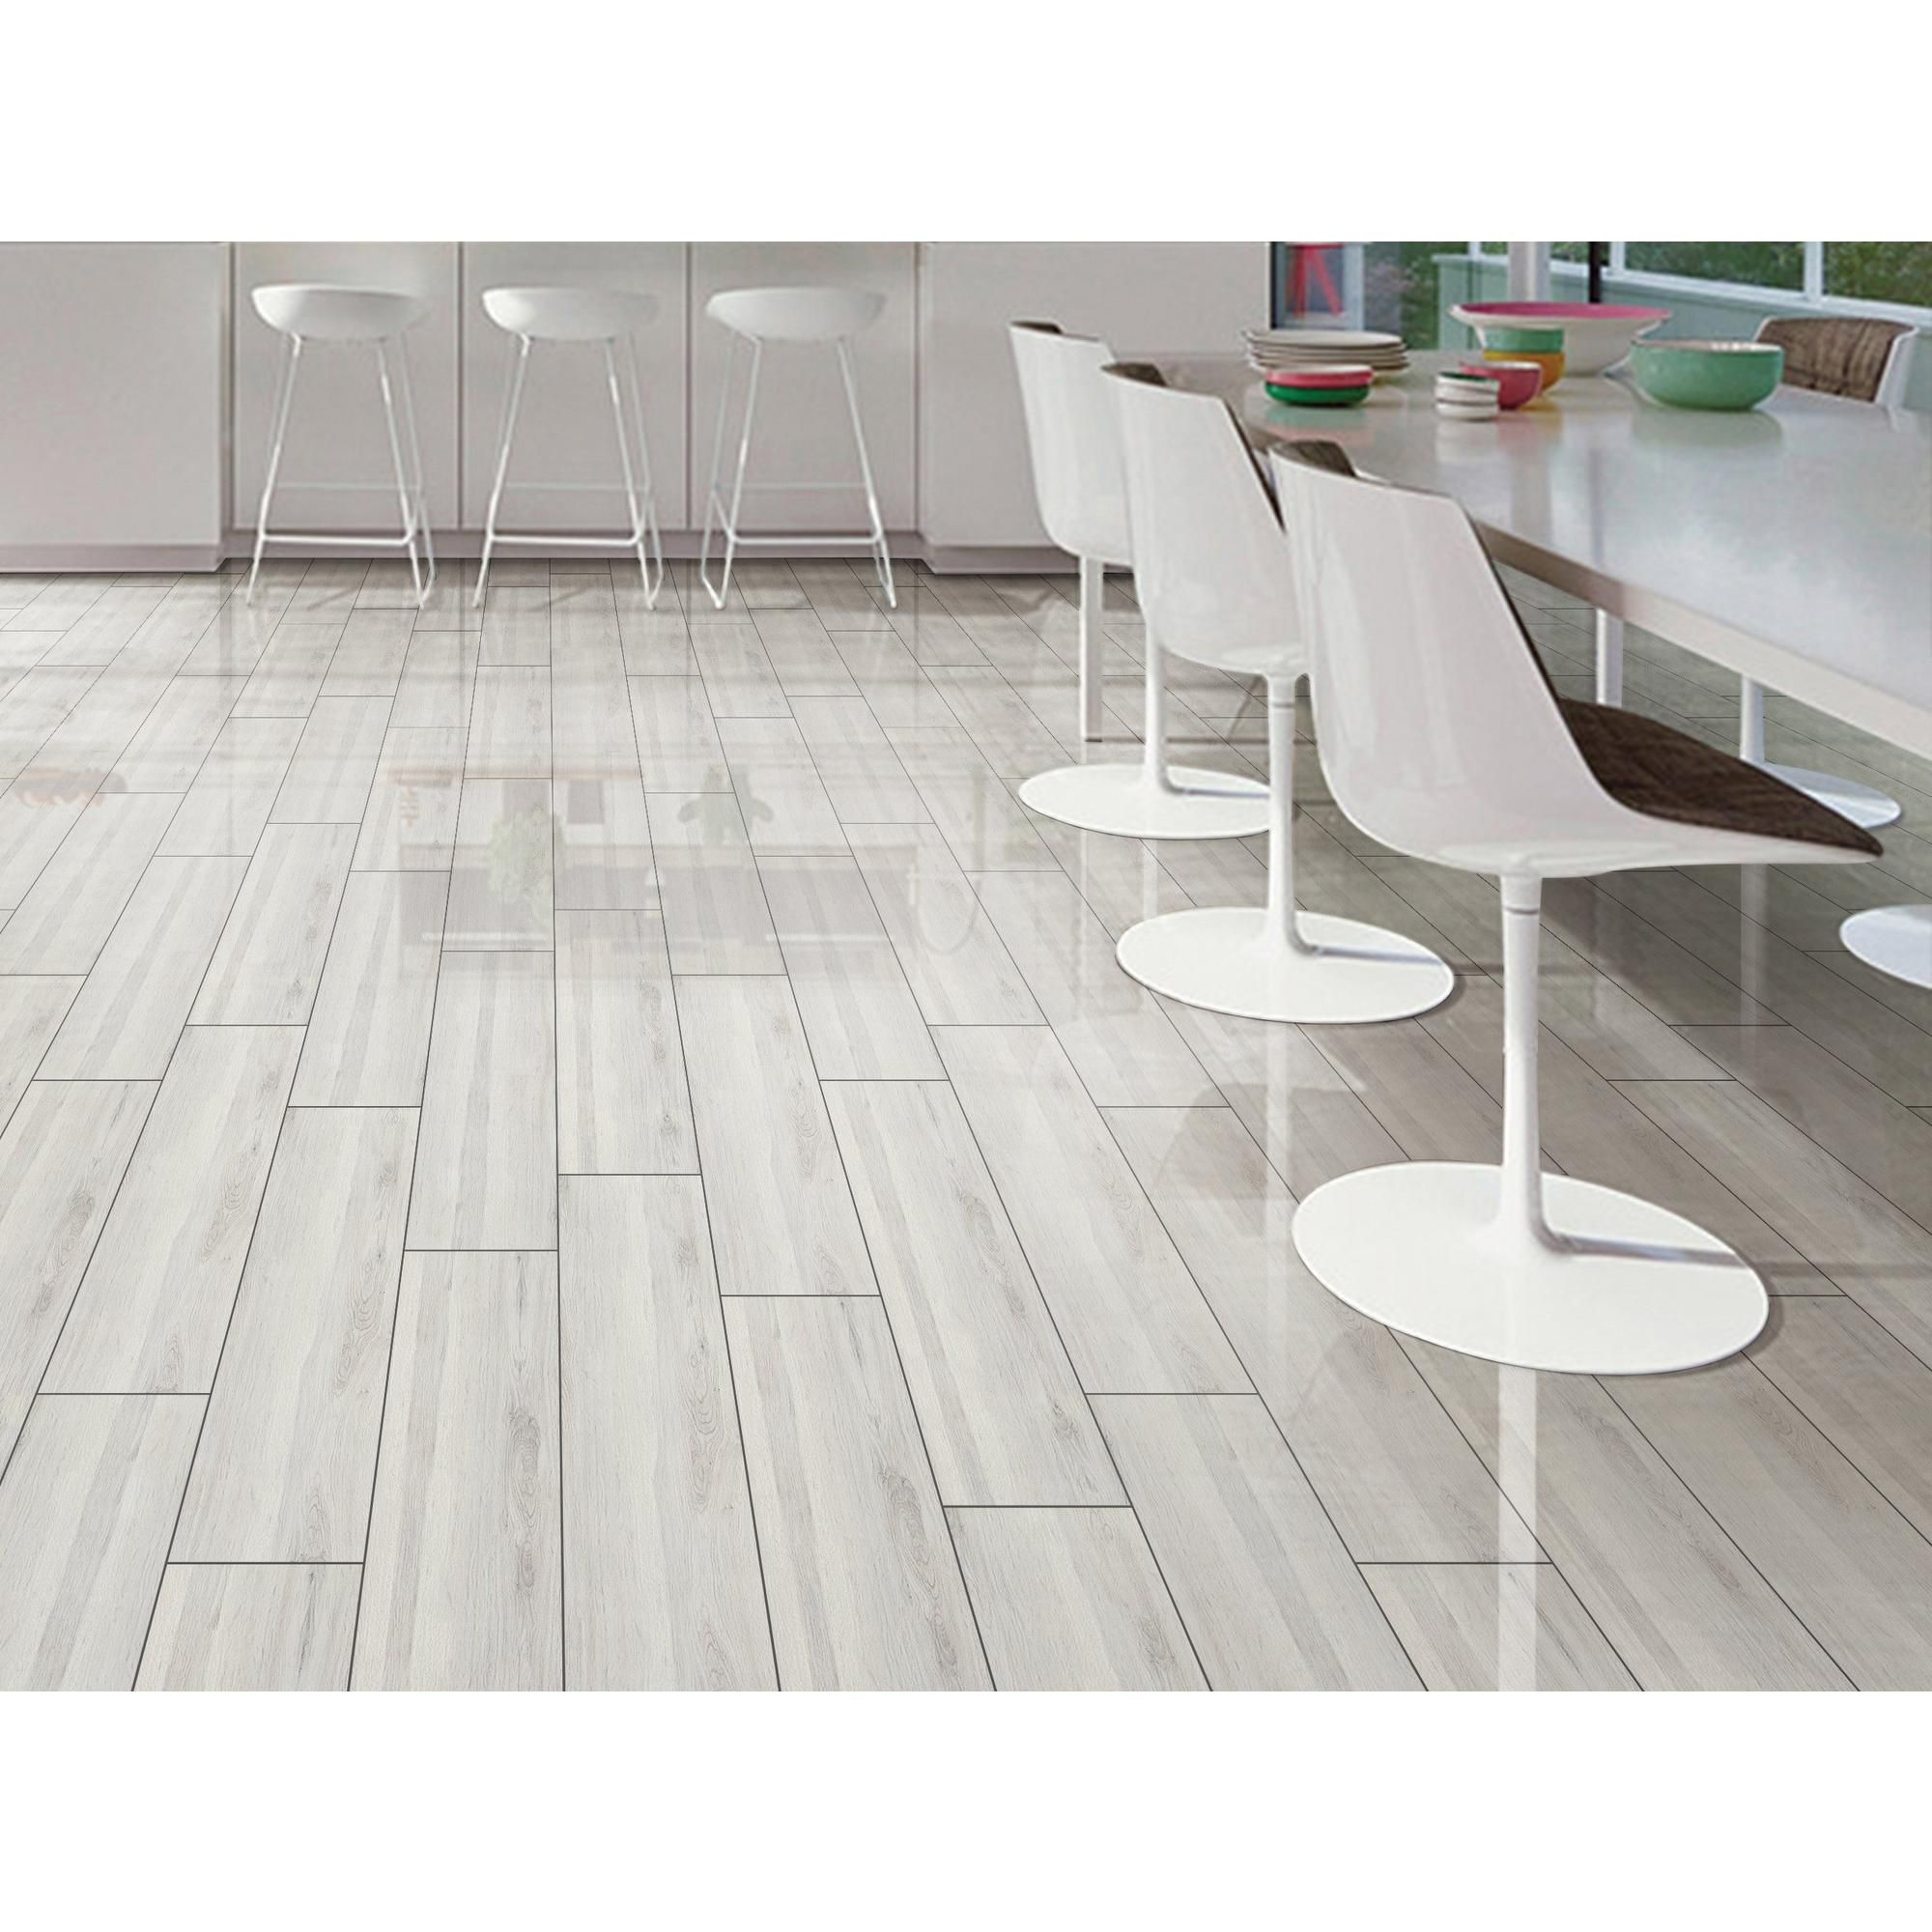 Hadley Gray Polished Wood Plank Ceramic Tile In 2020 Living Room Tiles Wood Planks Wood Polish